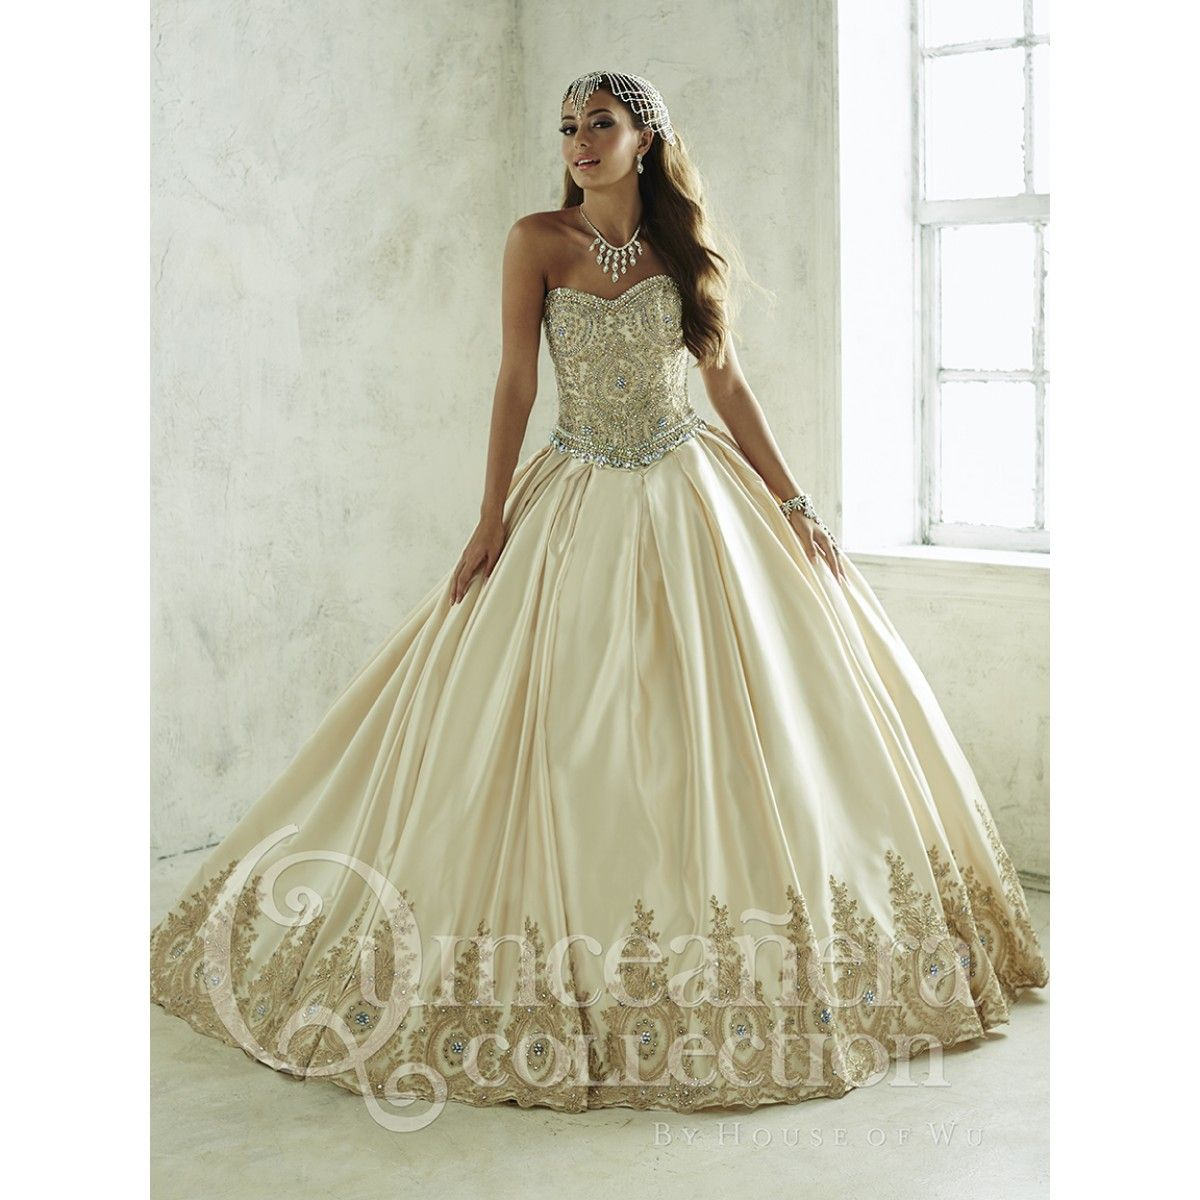 The house of wu 26826 quinceanera dress is a two piece satin ballgown featuring